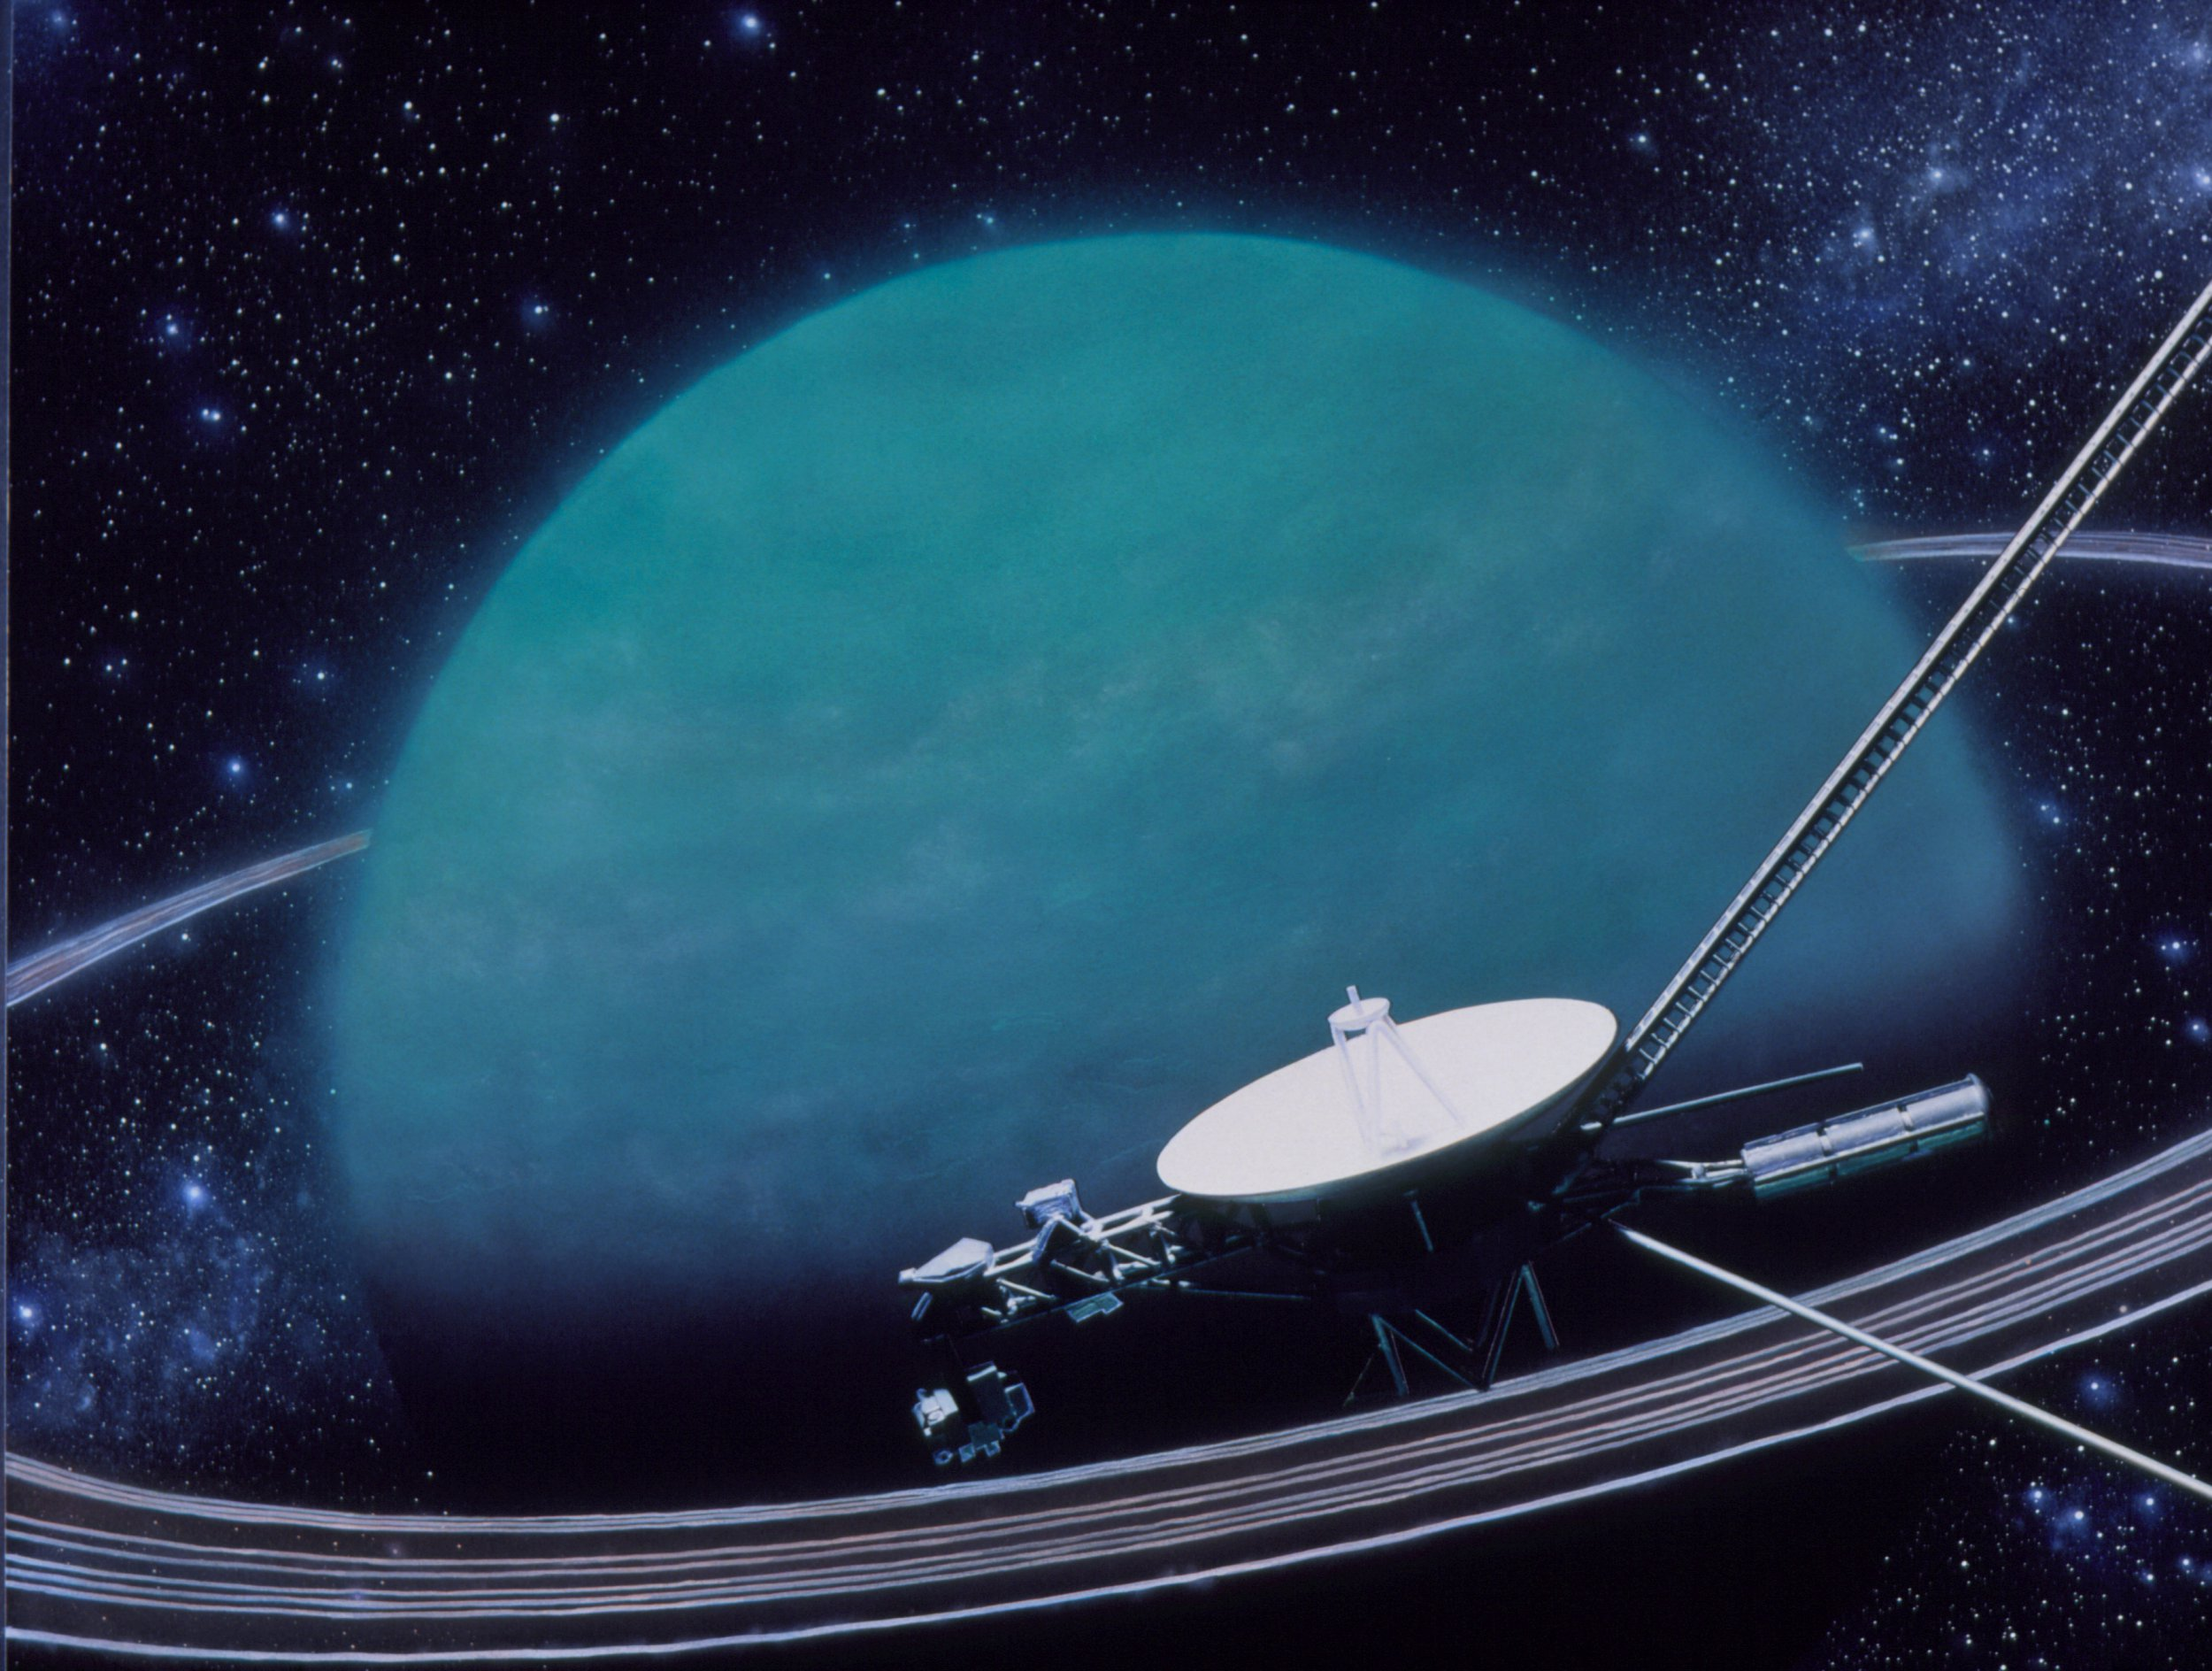 This artwork, by Julian Baum, shows the Voyager 2 spaceprobe only minutes away from closest approach to the planet Uranus, on 24/Jan/86. Uranus is one of the four great gas giants. It is unique in that its equator, along with its moons and tenuous ring system, is tilted at 98 degrees to the plane of the Solar System. Because of this, Voyagers encounter with the planet and its satellites lasted only about six hours. It also means that in alternate seasons Uranus poles and equator in turn face the Sun. Uranus orbits the Sun once in 84 years and, at present, the planets south pole faces the Sun, in the midst of a 21 year long summer.